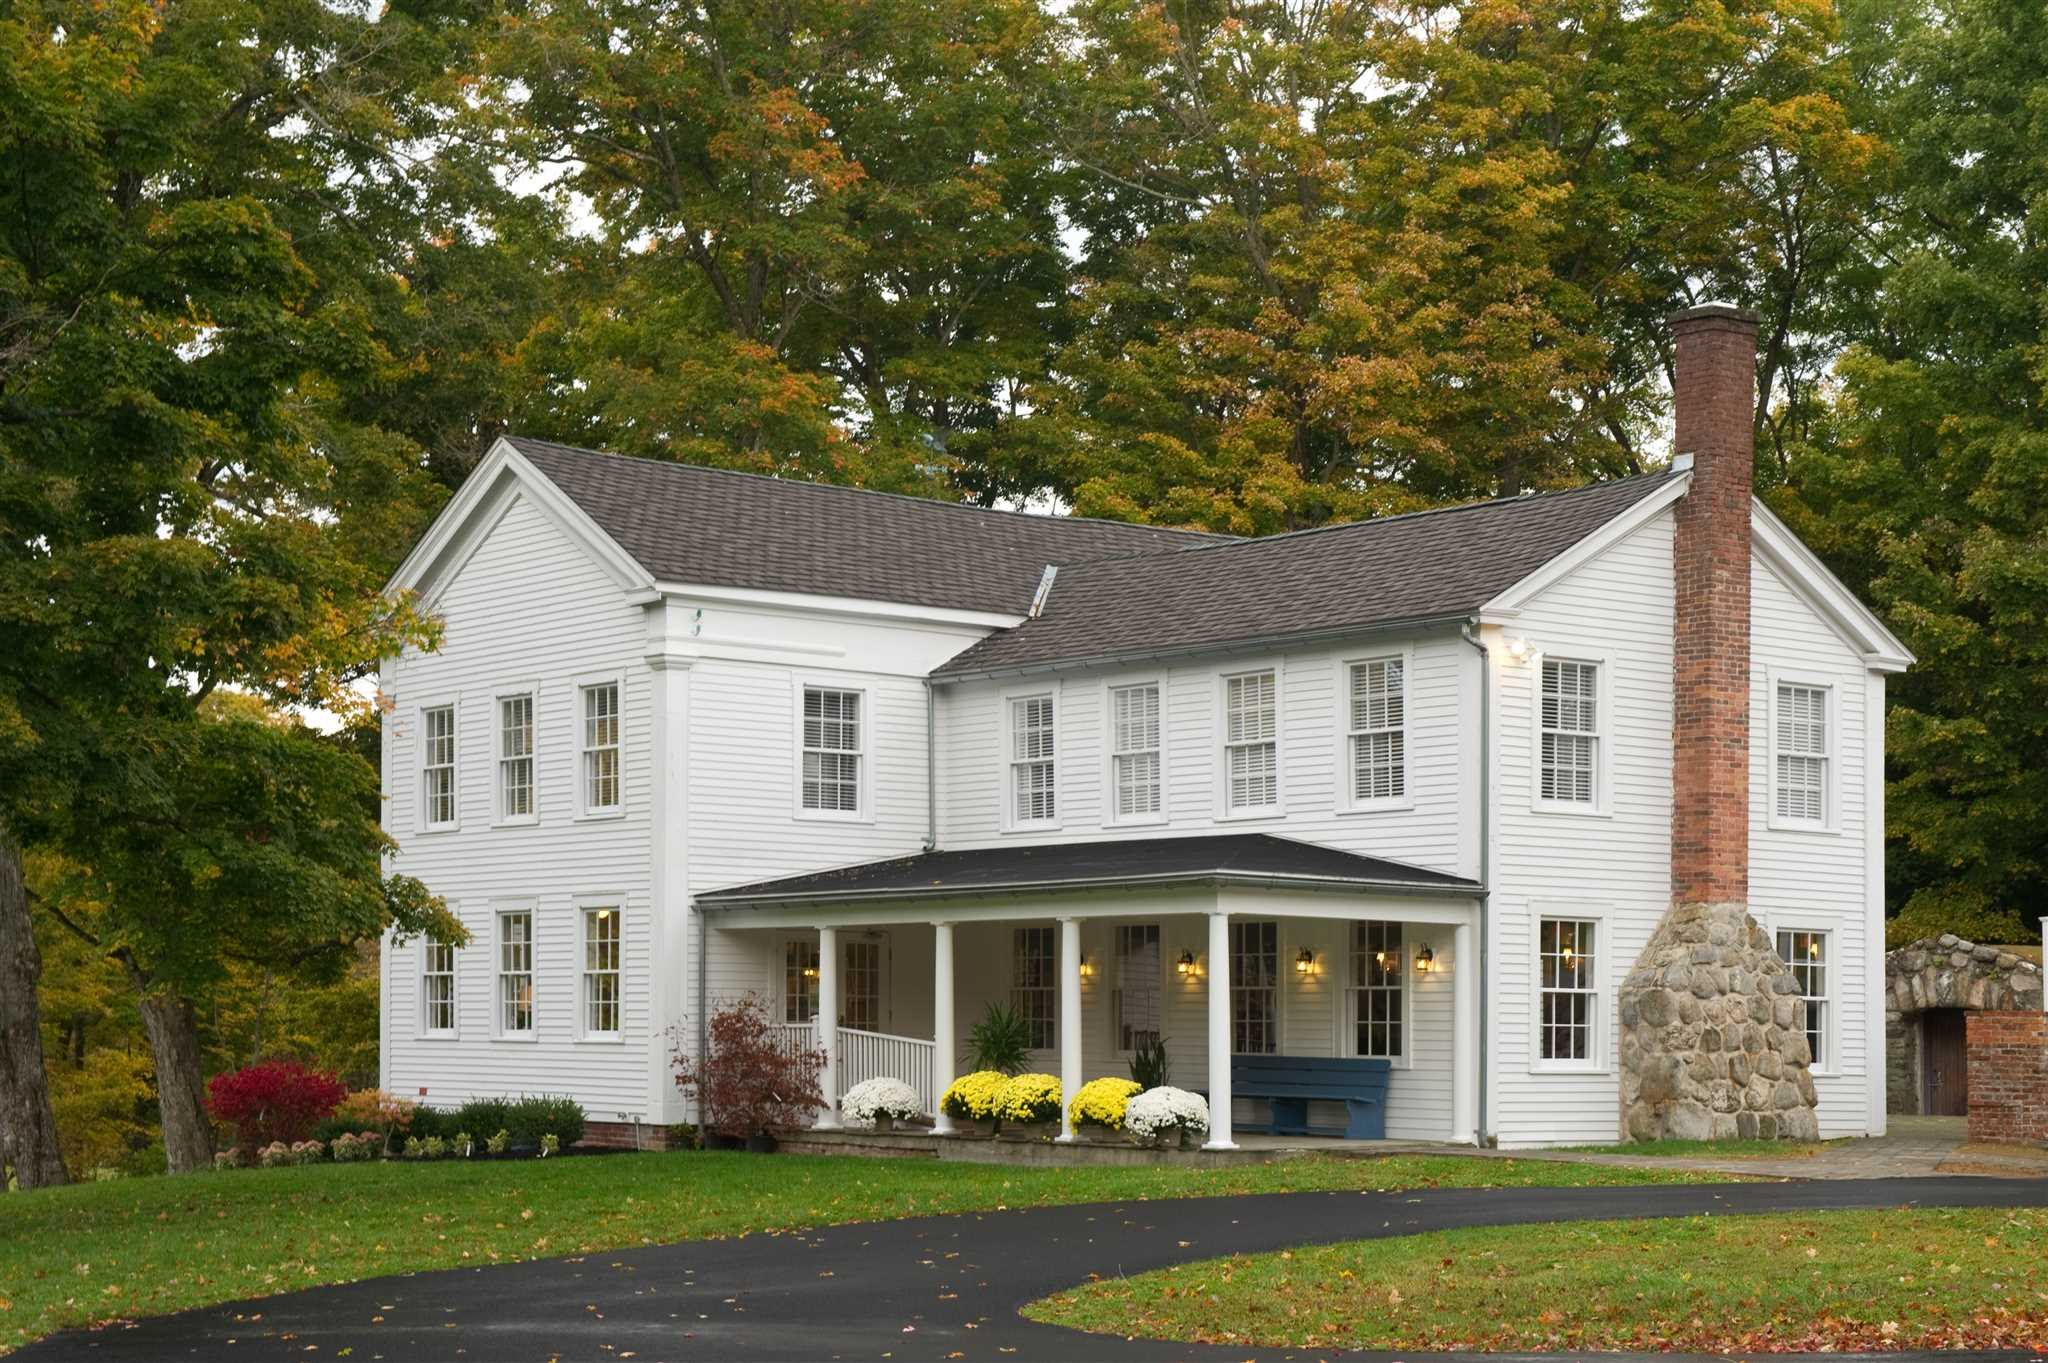 Business for Sale at 3 GIFFORD ROAD 3 GIFFORD ROAD Union Vale, New York 12545 United States